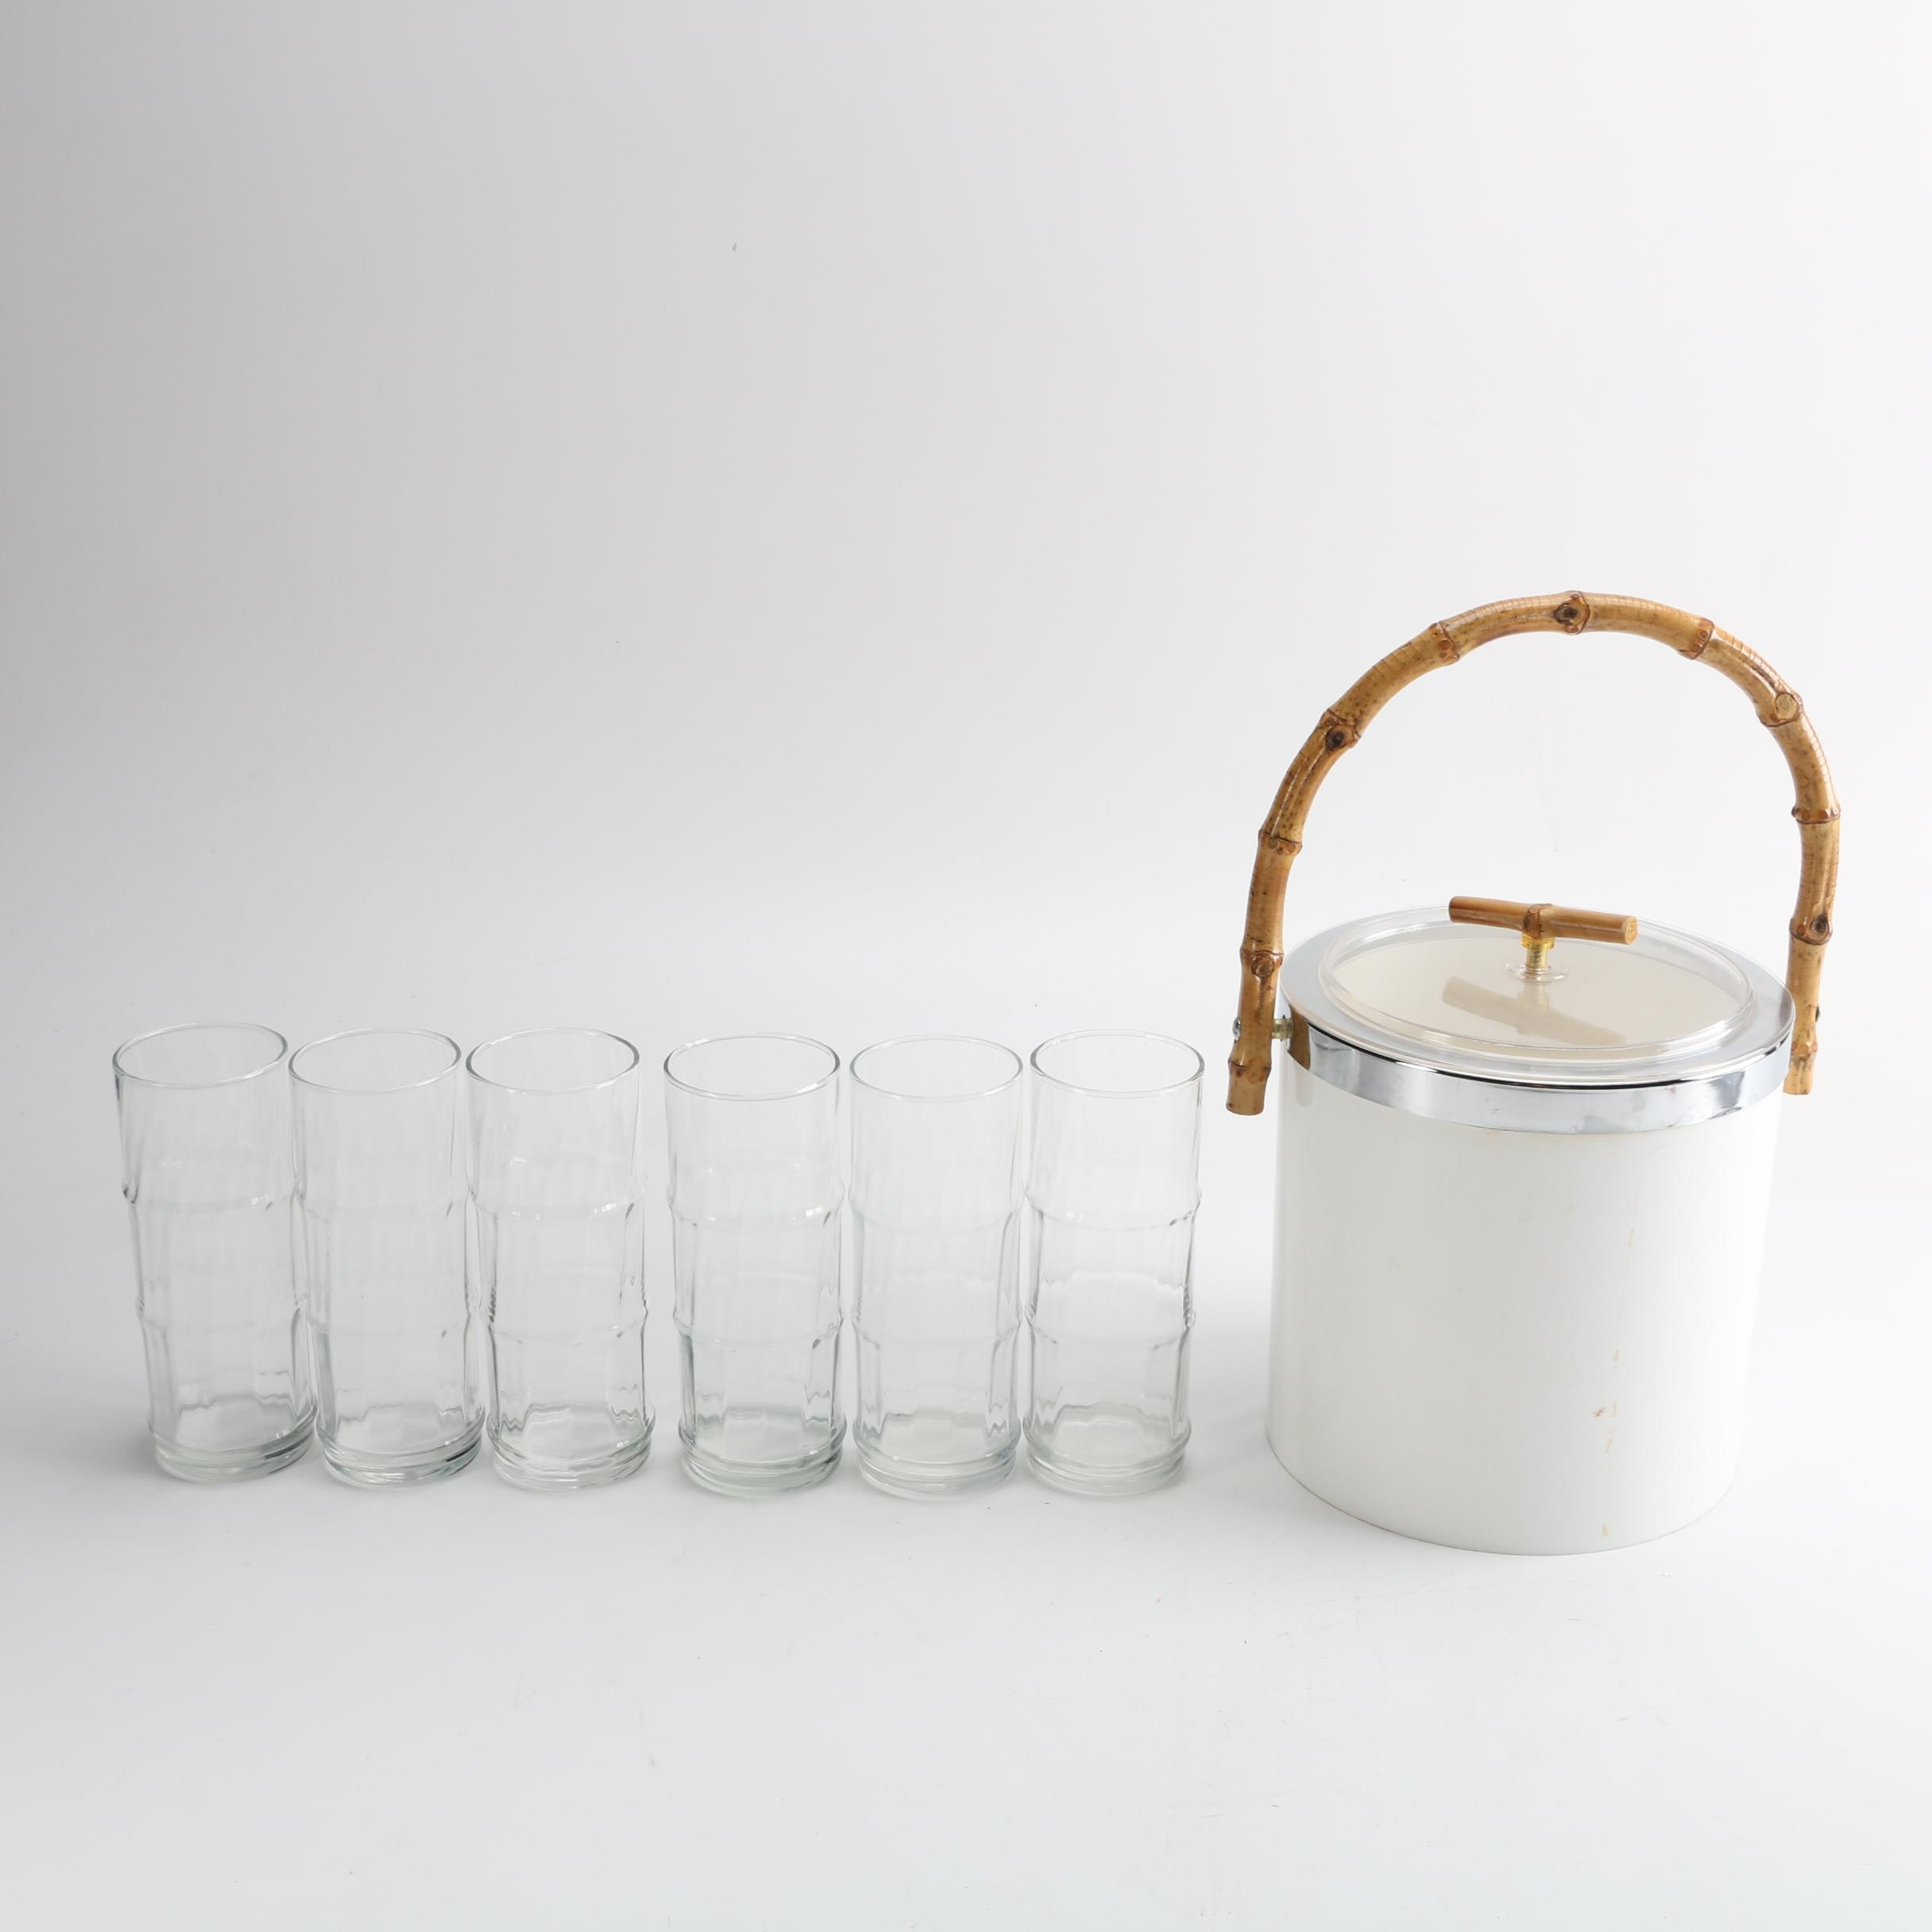 Bamboo-Style Ice Bucket and Glassware Set